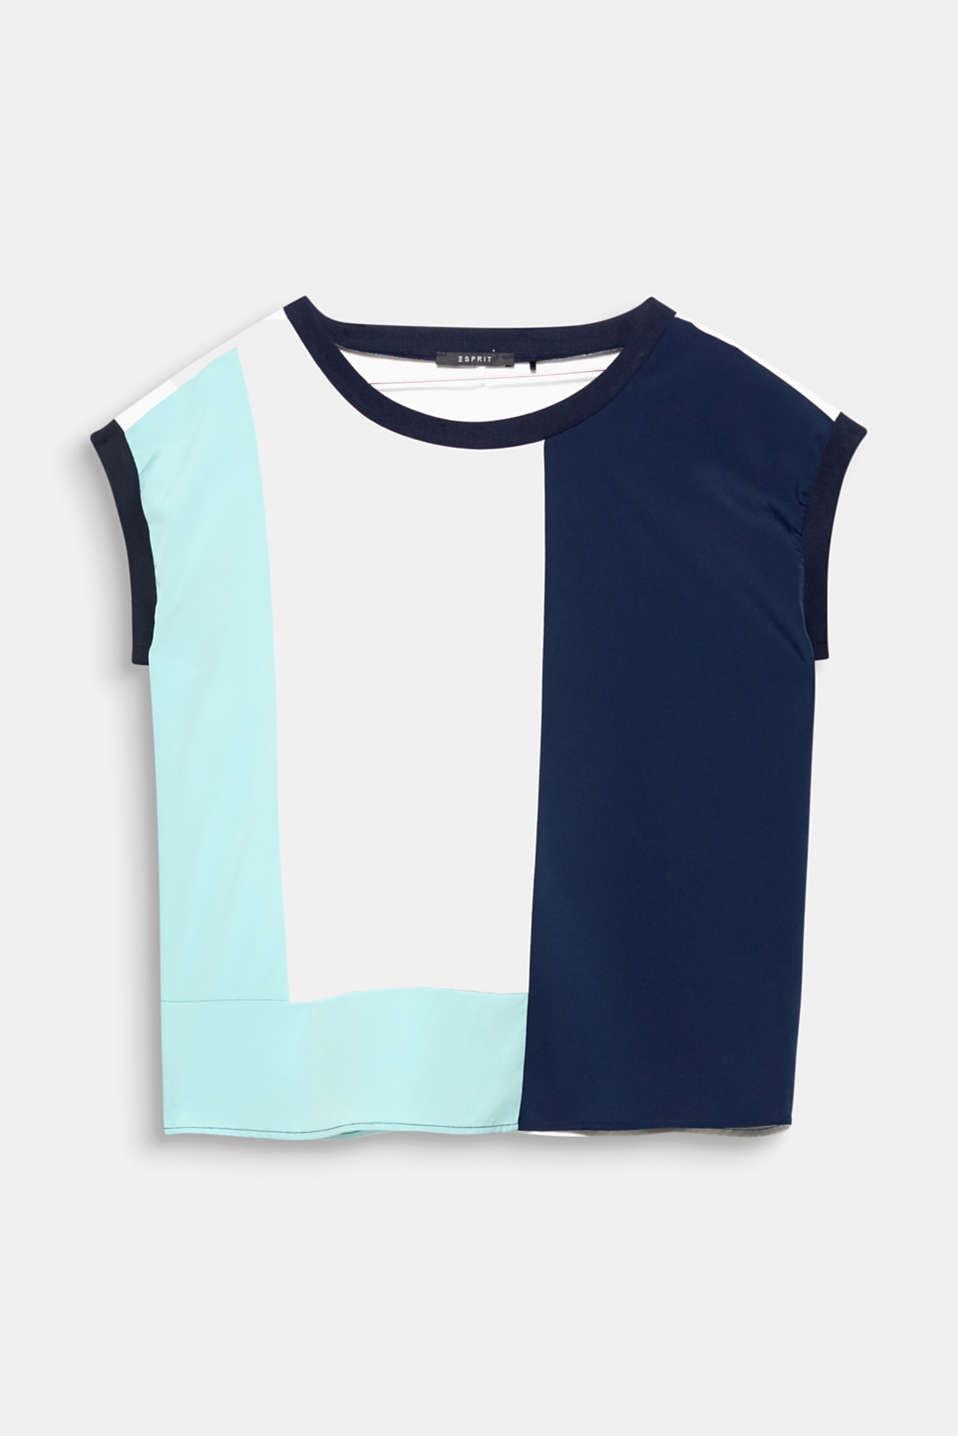 Flowing fabric, modern colour blocking and a sporty ribbed texture make this blouse top so versatile!